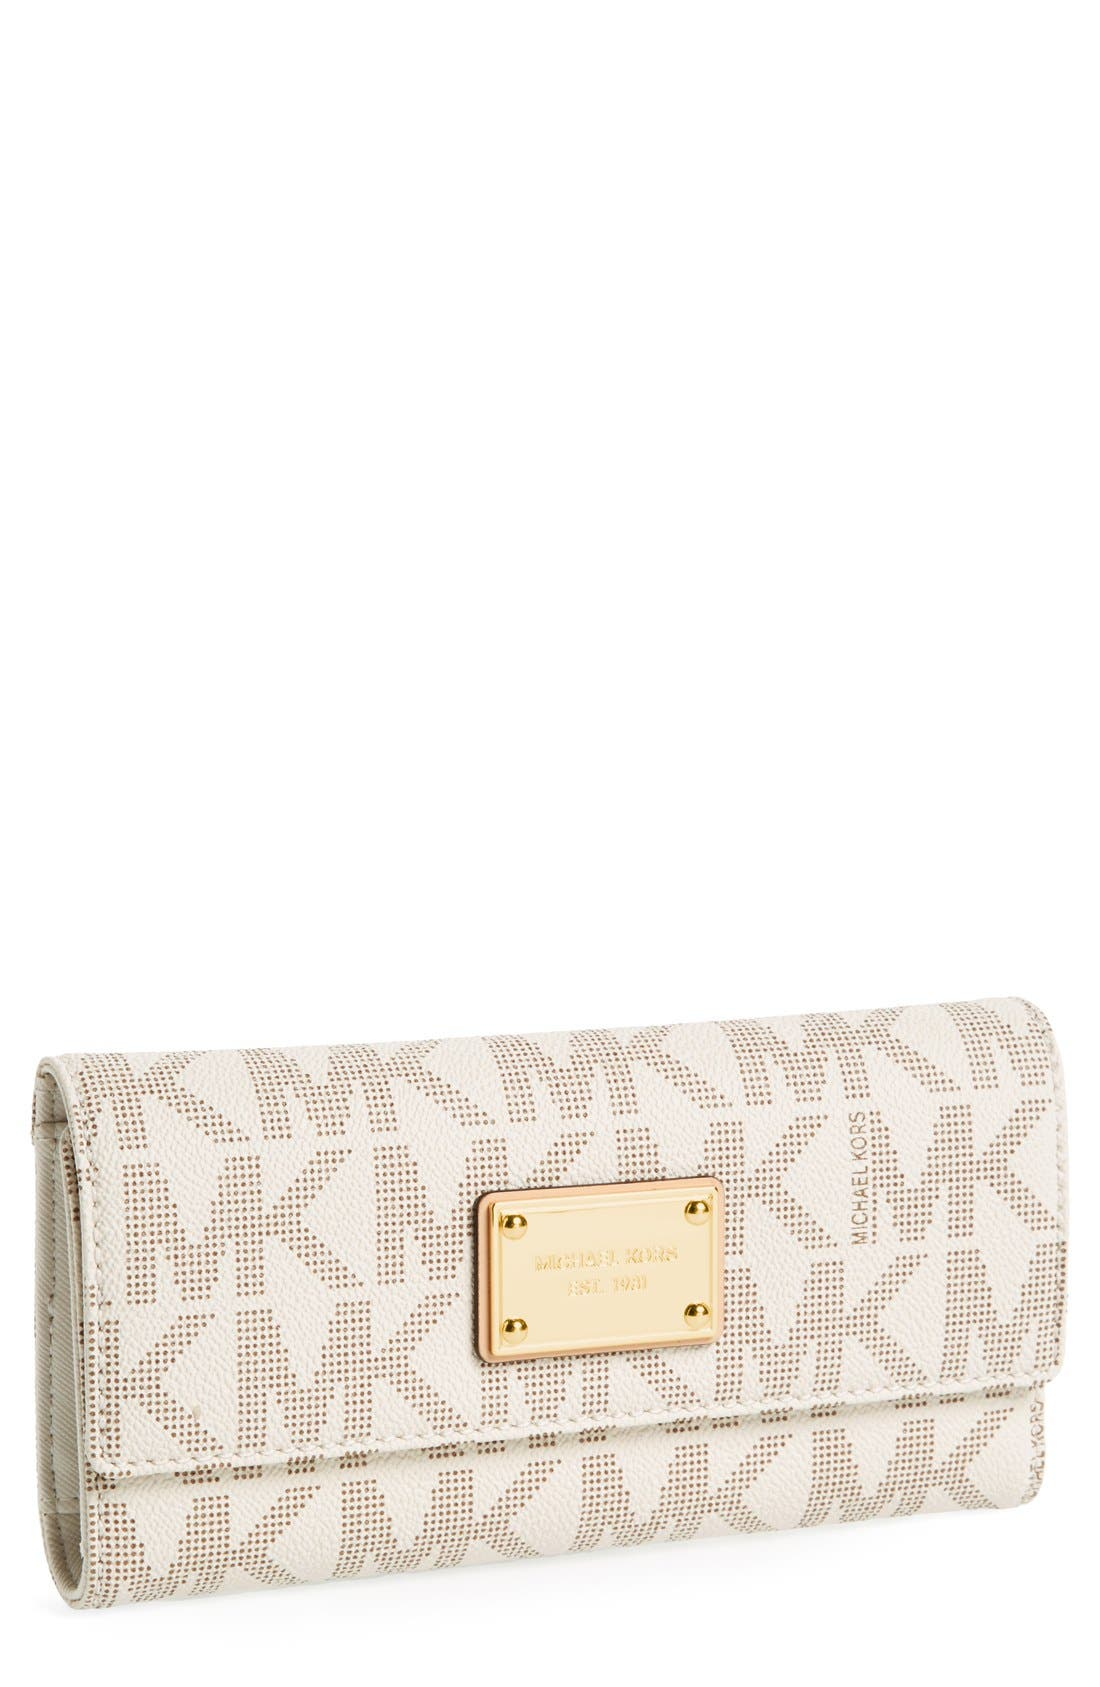 Alternate Image 1 Selected - MICHAEL Michael Kors 'Jet Set - Signature' Checkbook Wallet